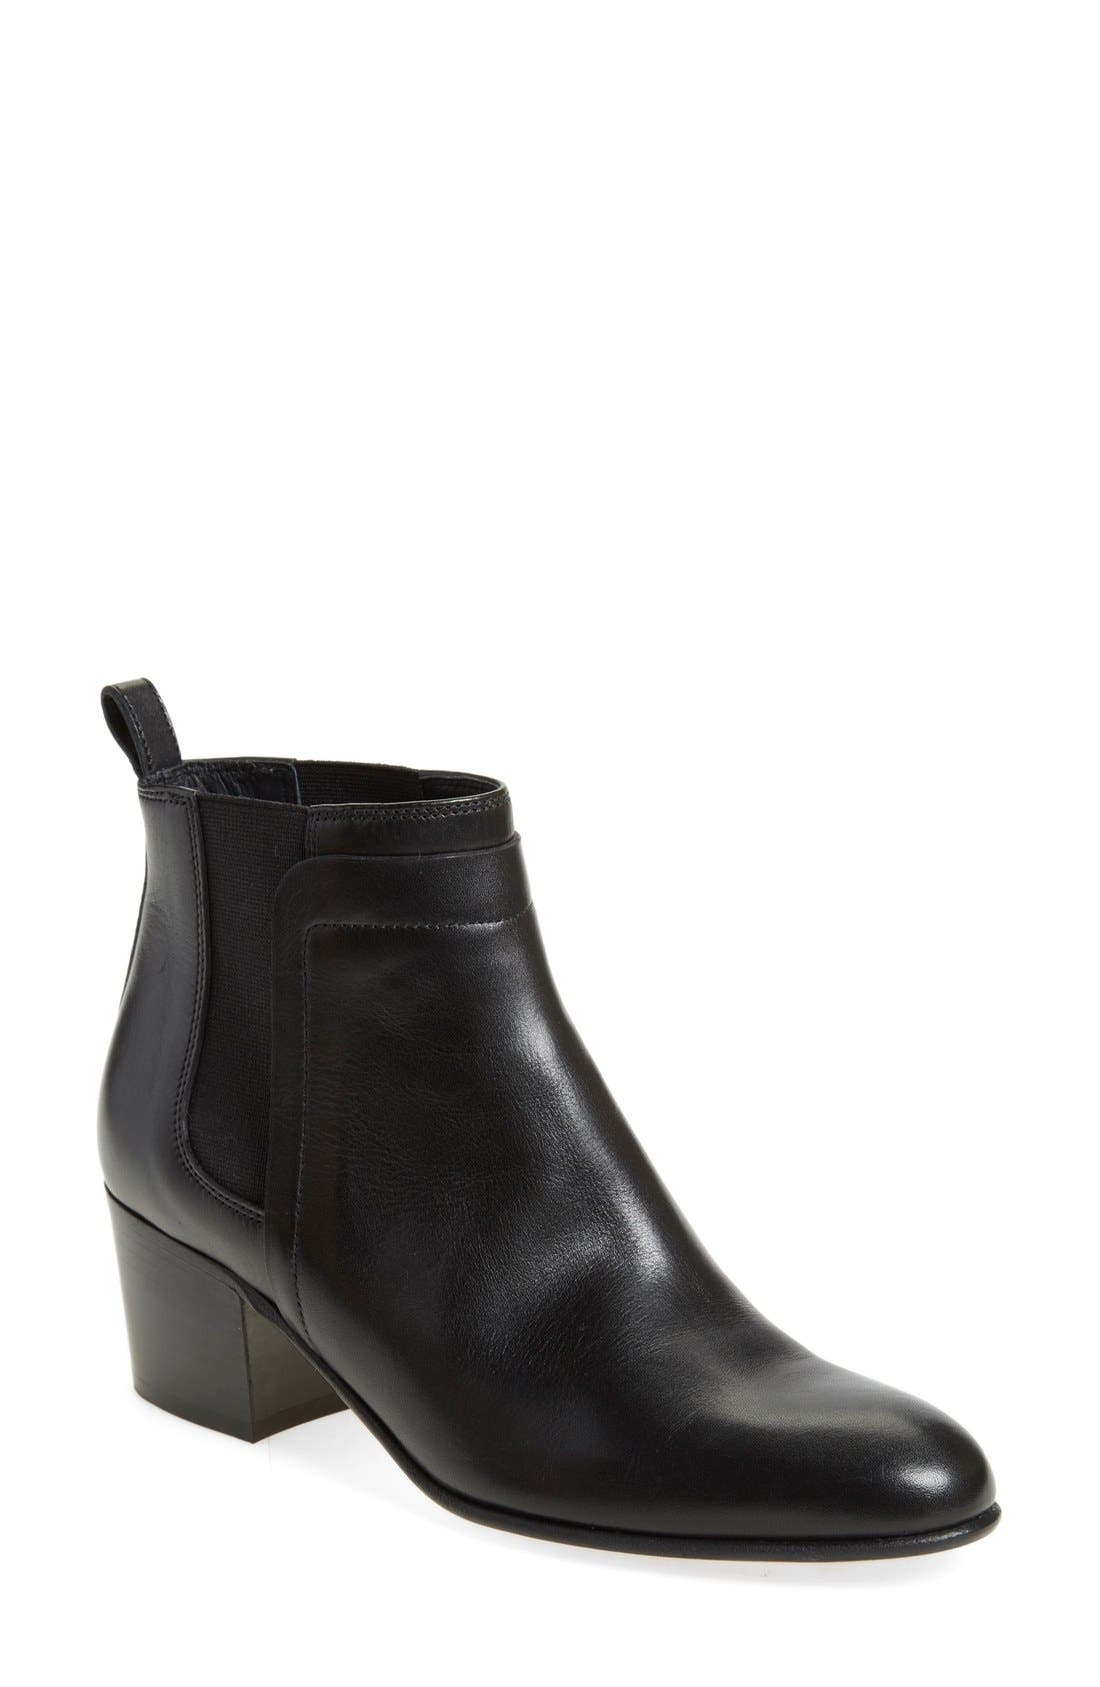 Alternate Image 1 Selected - Vince 'Hallie' Round Toe Bootie (Women)